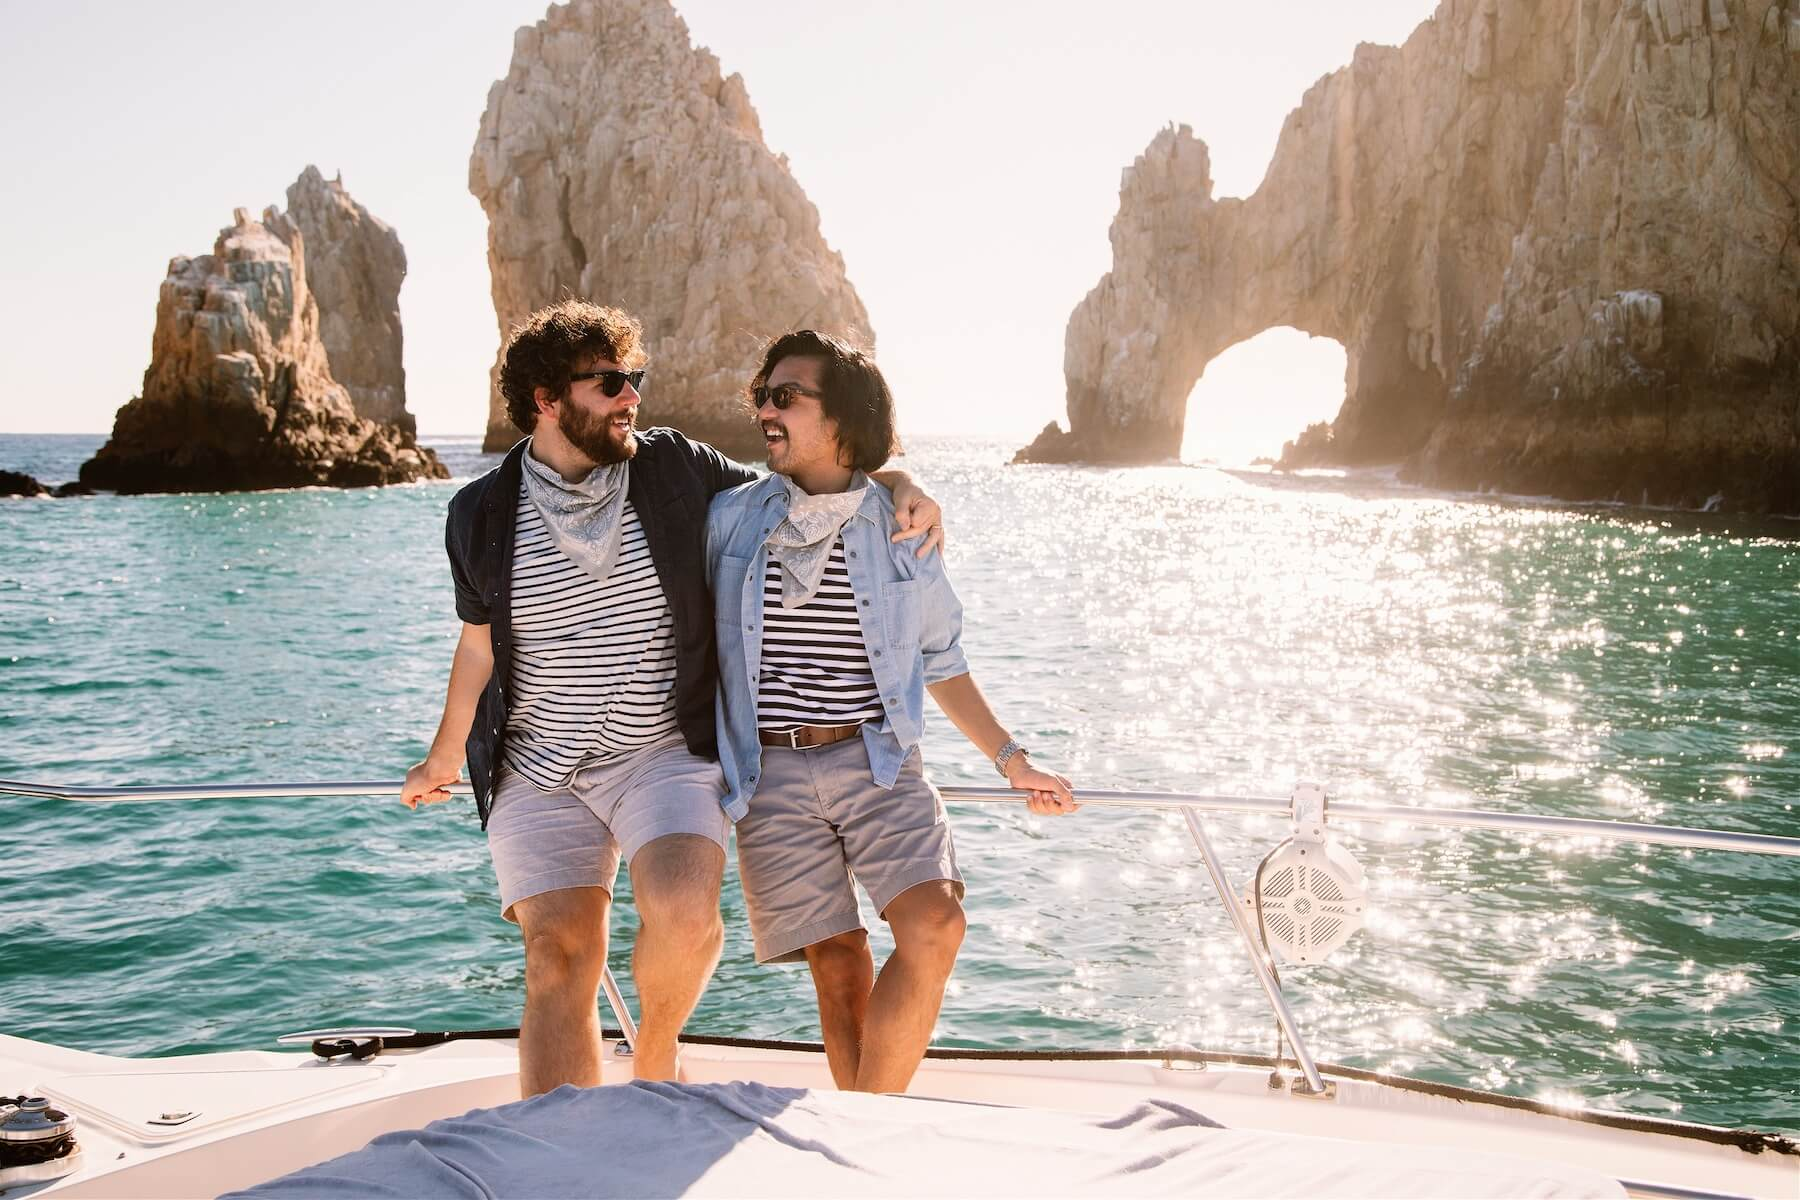 LGBT gay couple on a boat in front of the Arch of Cabo San Lucas in Mexico on a photo shoot with Flytographer.